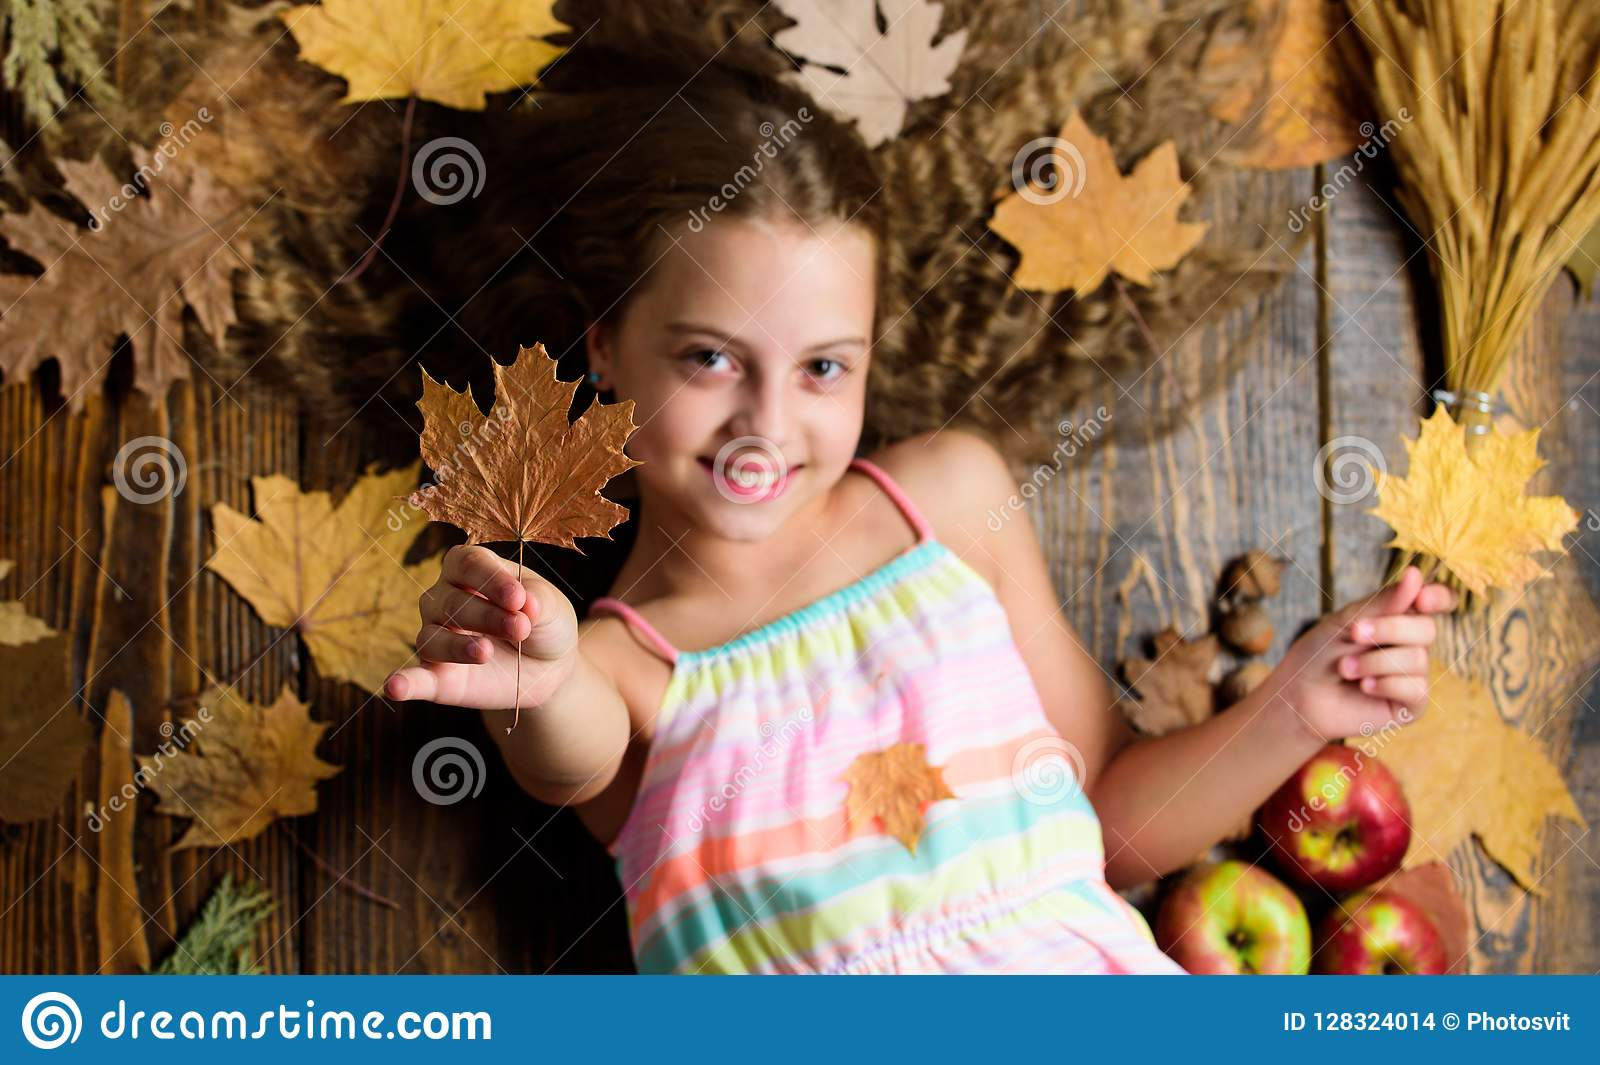 Tips for turning autumn into best season kid girl smiling face relax wooden background autumn